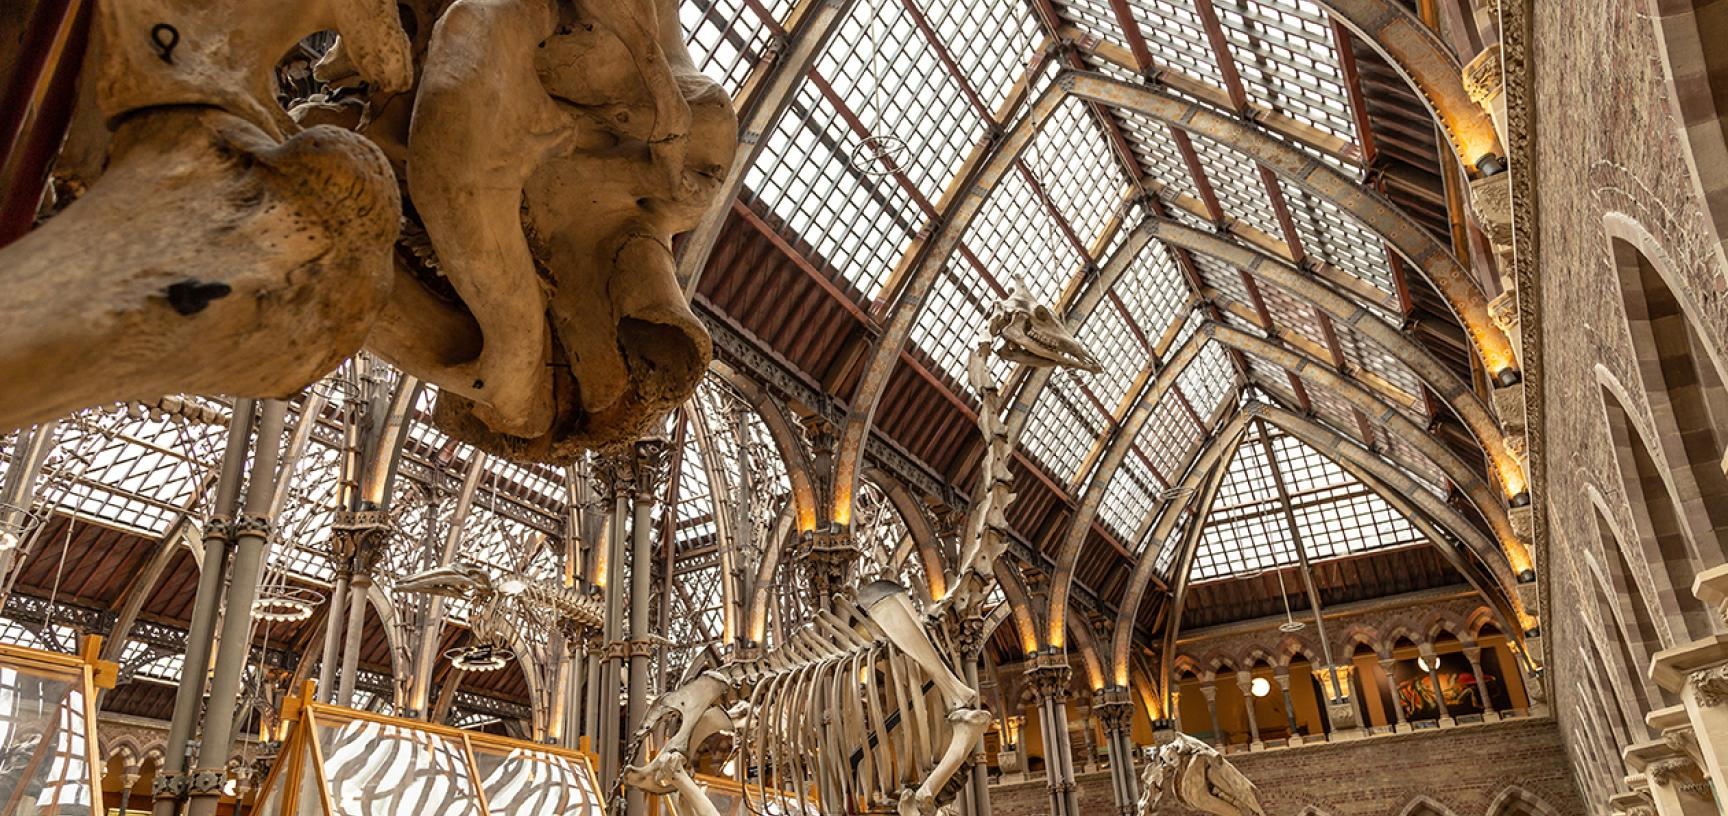 African elephant (Loxodonta africana) looking towards giraffe and horse in the skeleton parade